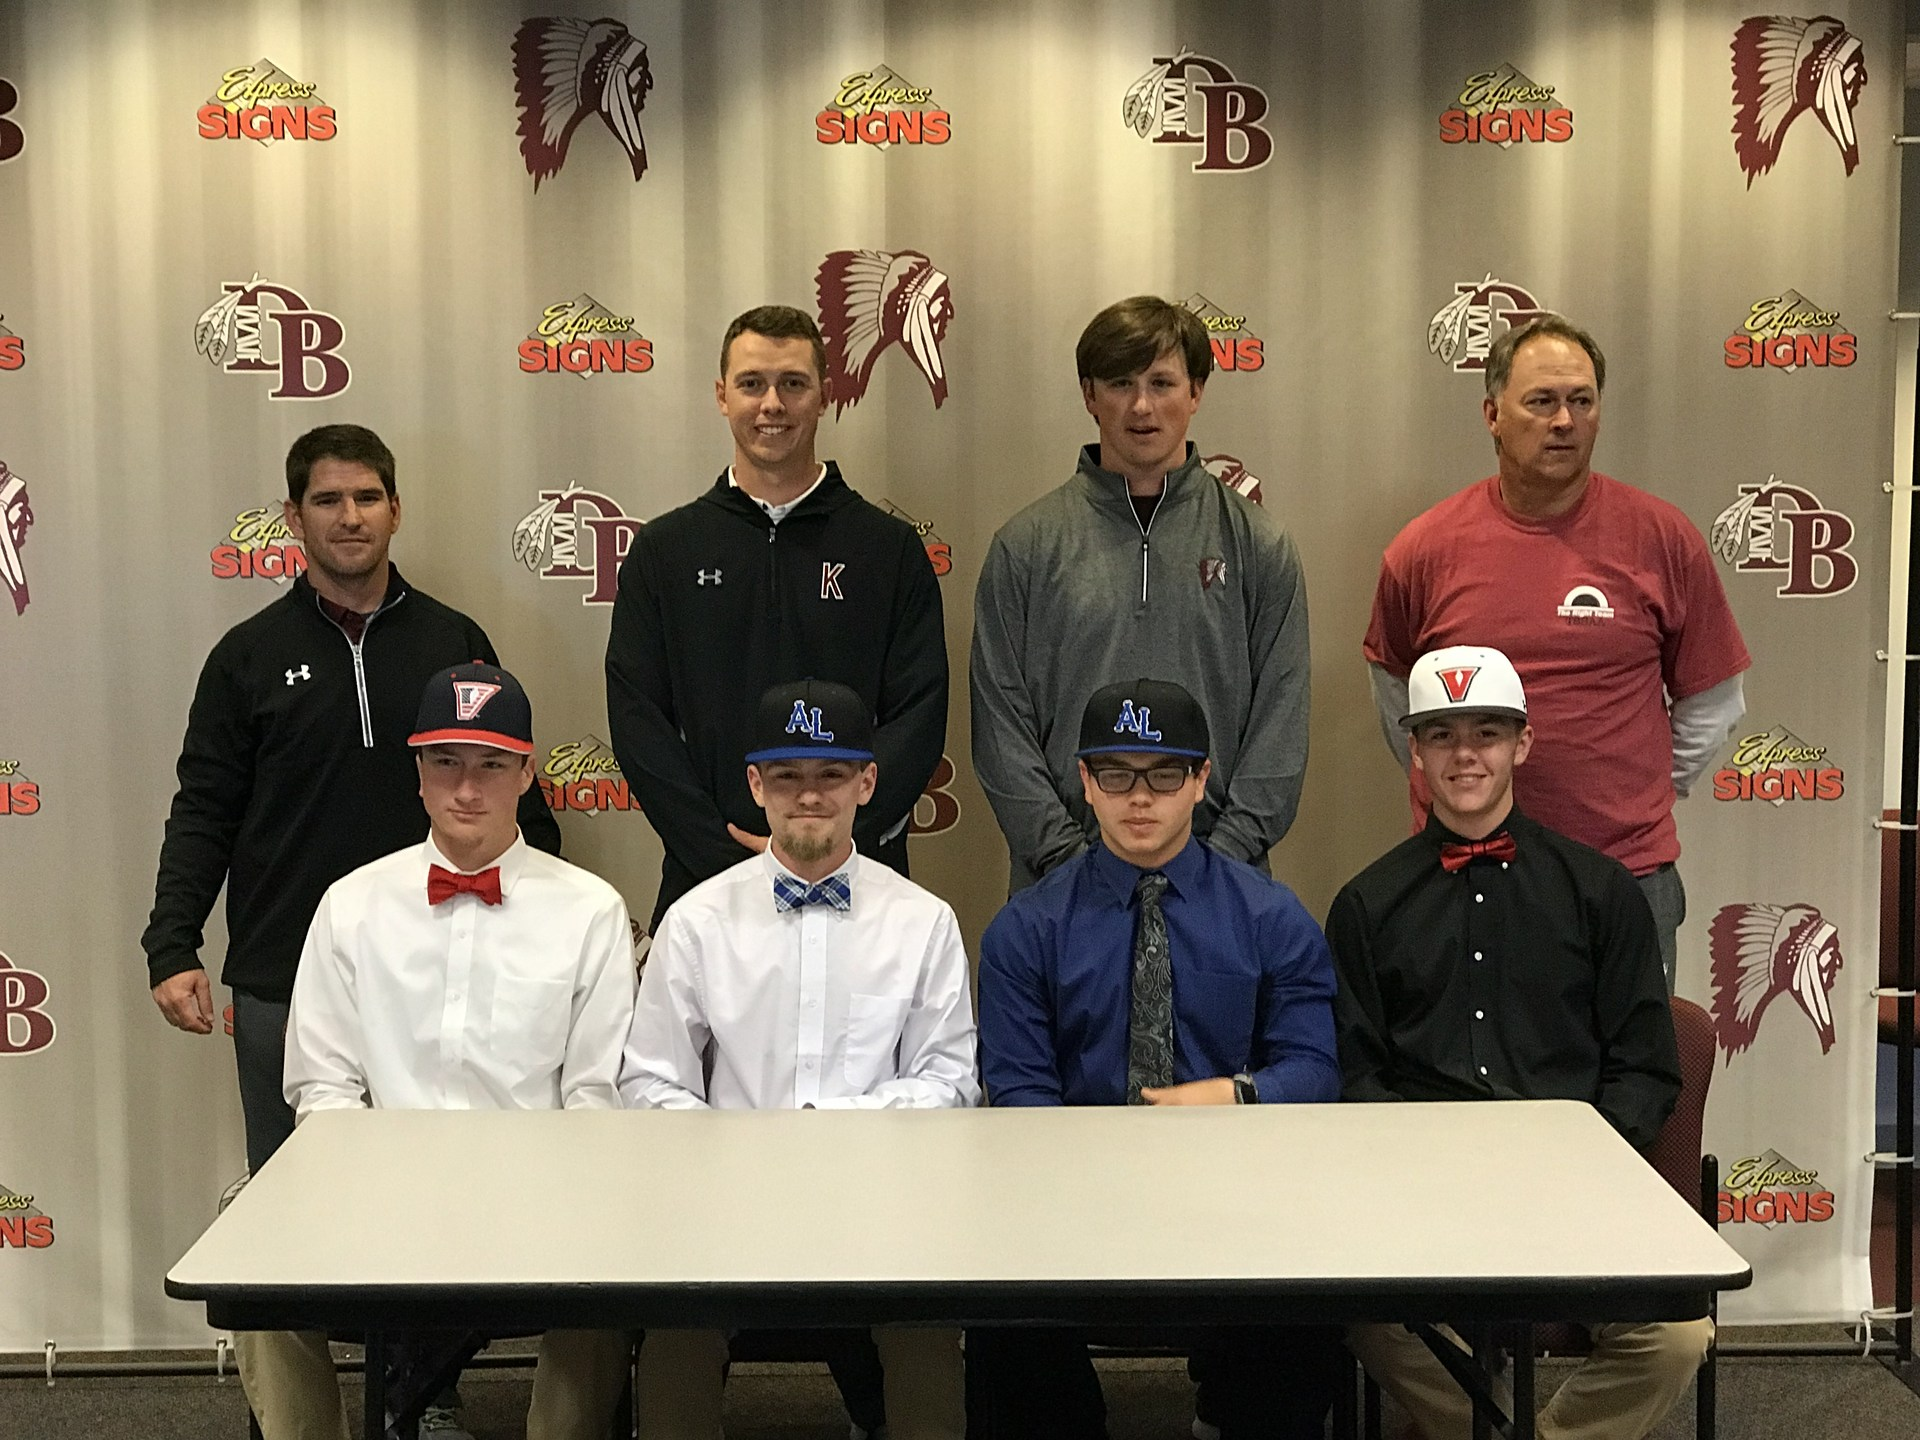 4/11/18 - Everett, Ferrell, Gladson, and Whitehead commit to play baseball at the next level.